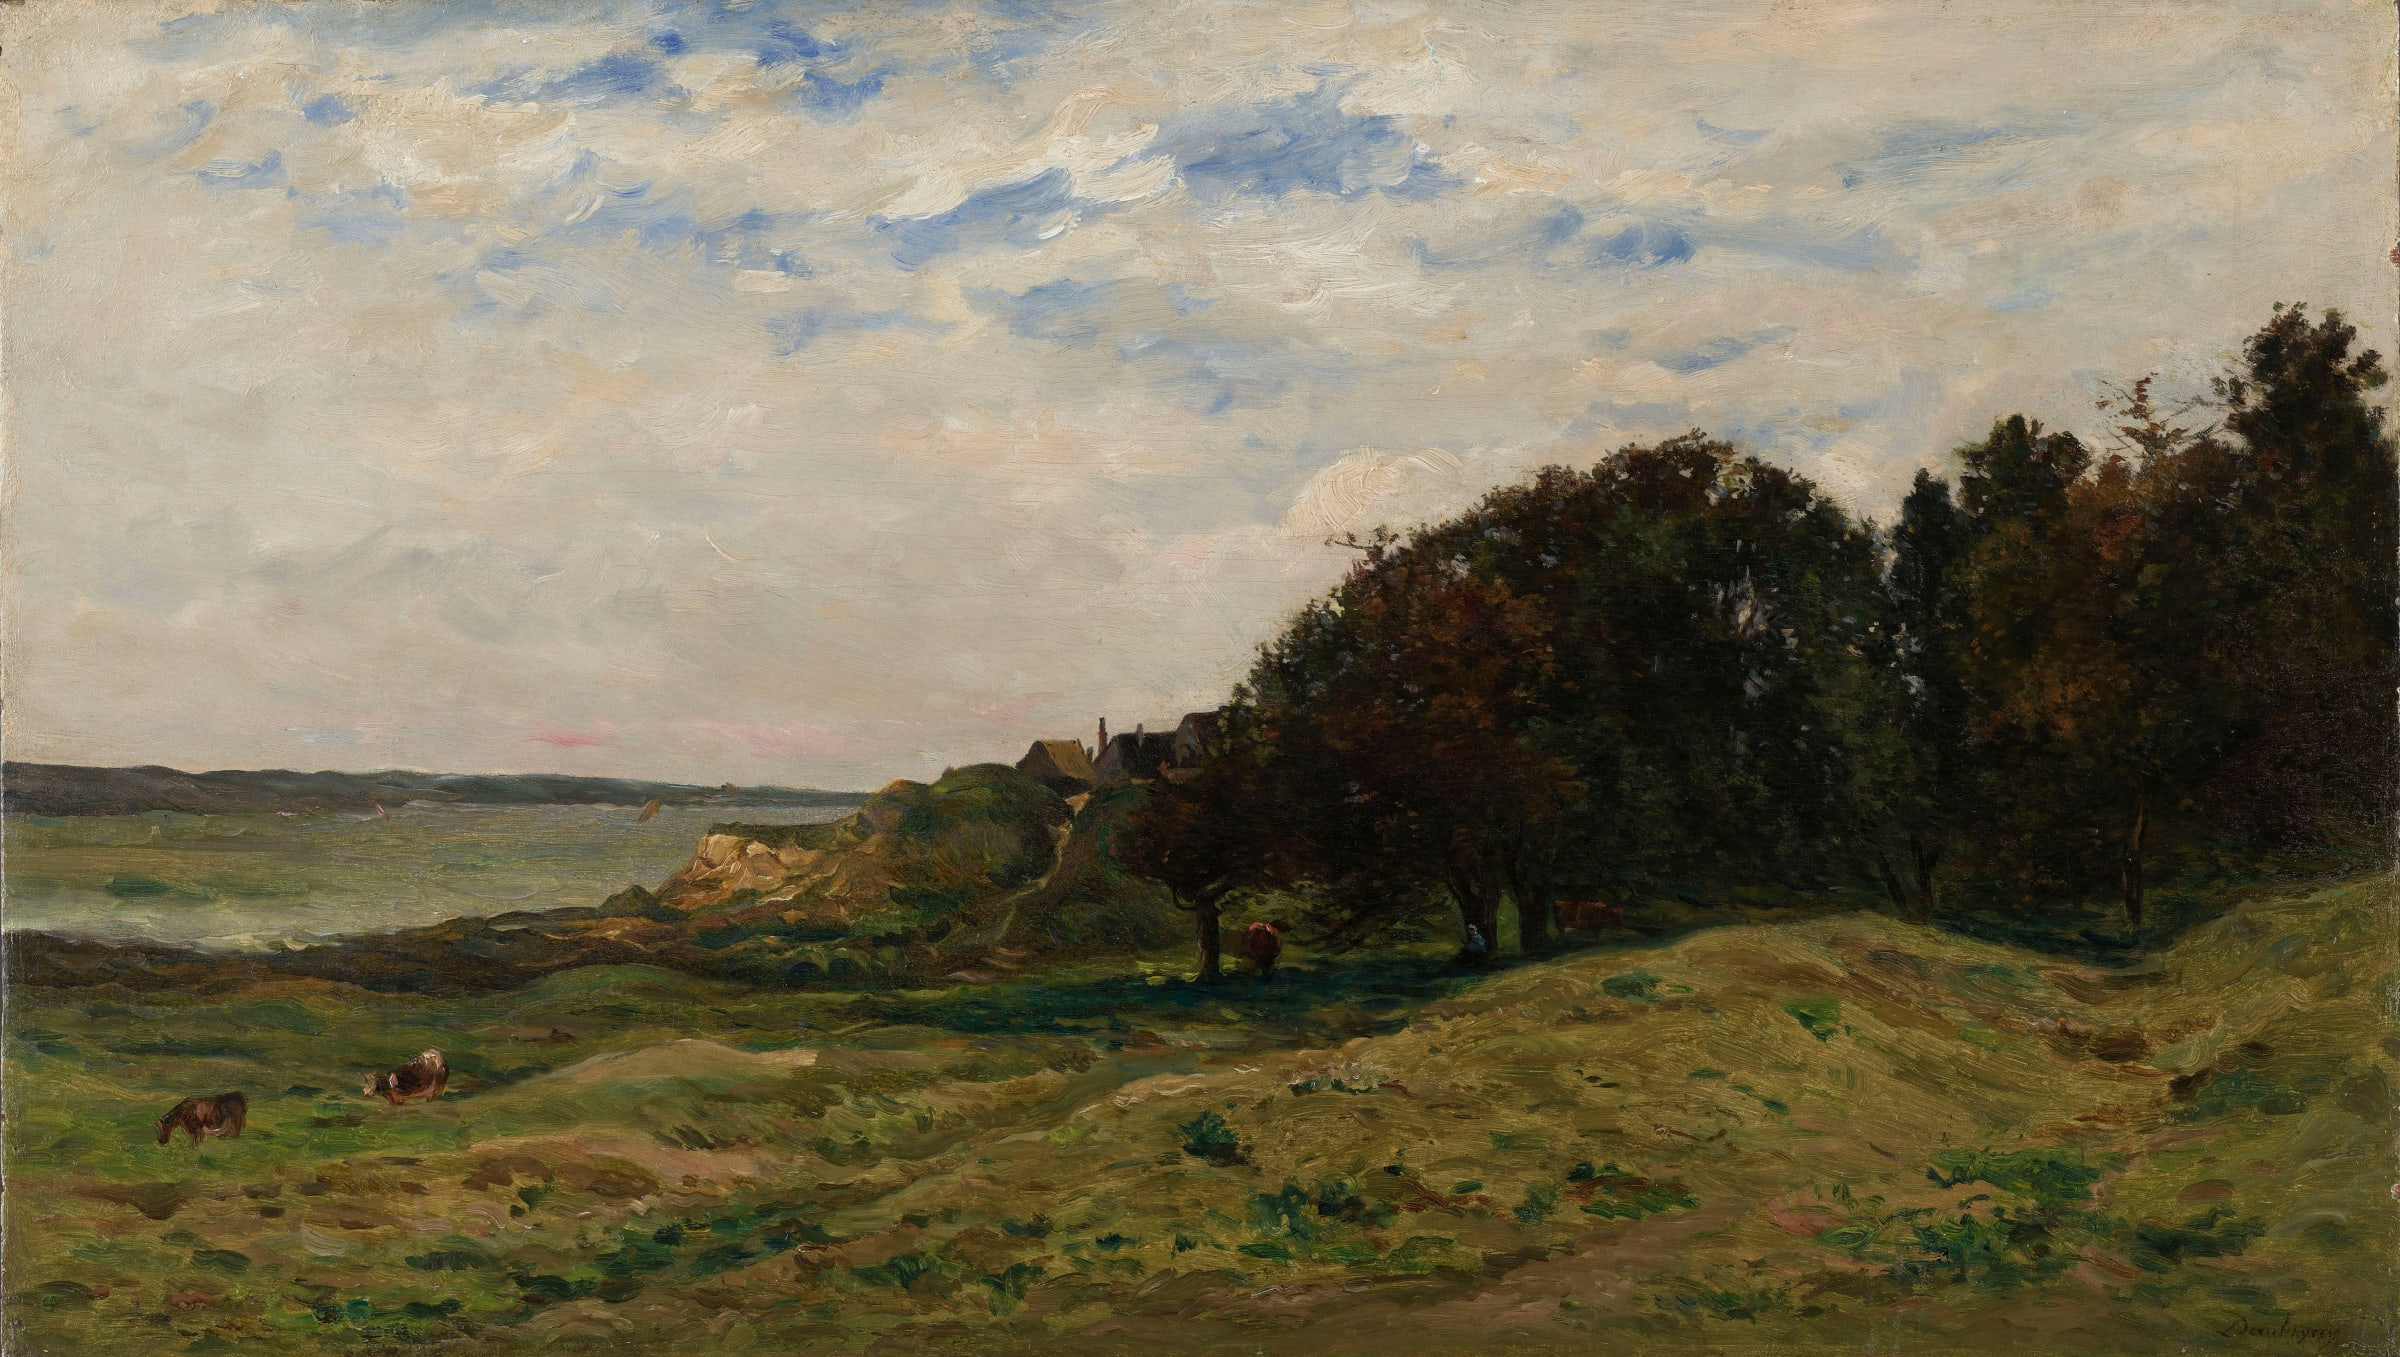 "<span class=""link fancybox-details-link""><a href=""/artists/34-charles-francois-daubigny/works/9430-charles-fran-ois-daubigny-villerville-1874/"">View Detail Page</a></span><div class=""artist""><span class=""artist""><strong>Charles François Daubigny</strong></span></div>